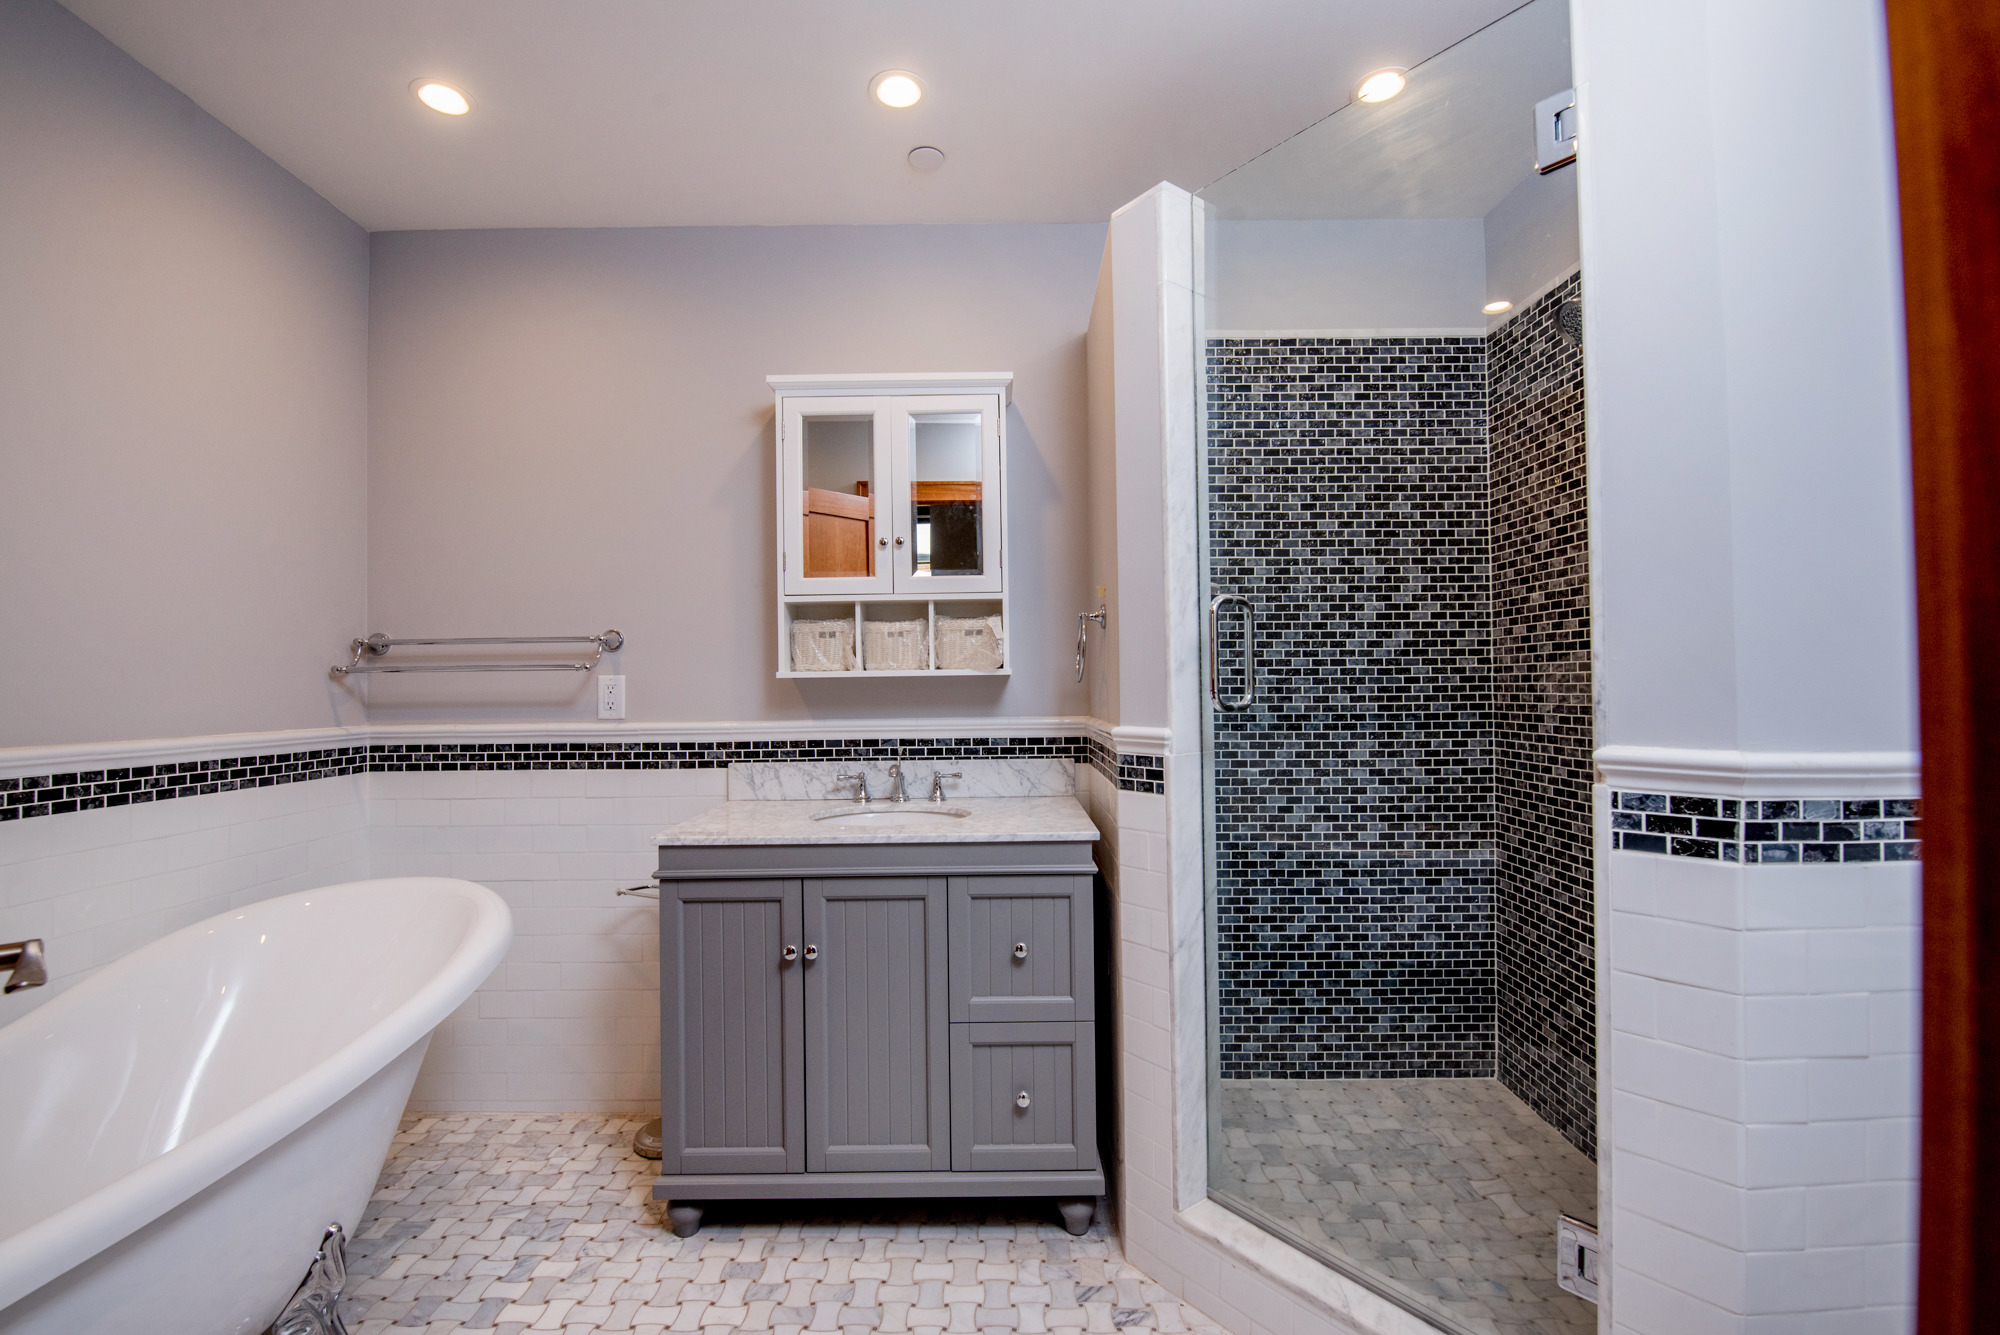 Ceramic, glass and marble tile bathrooms